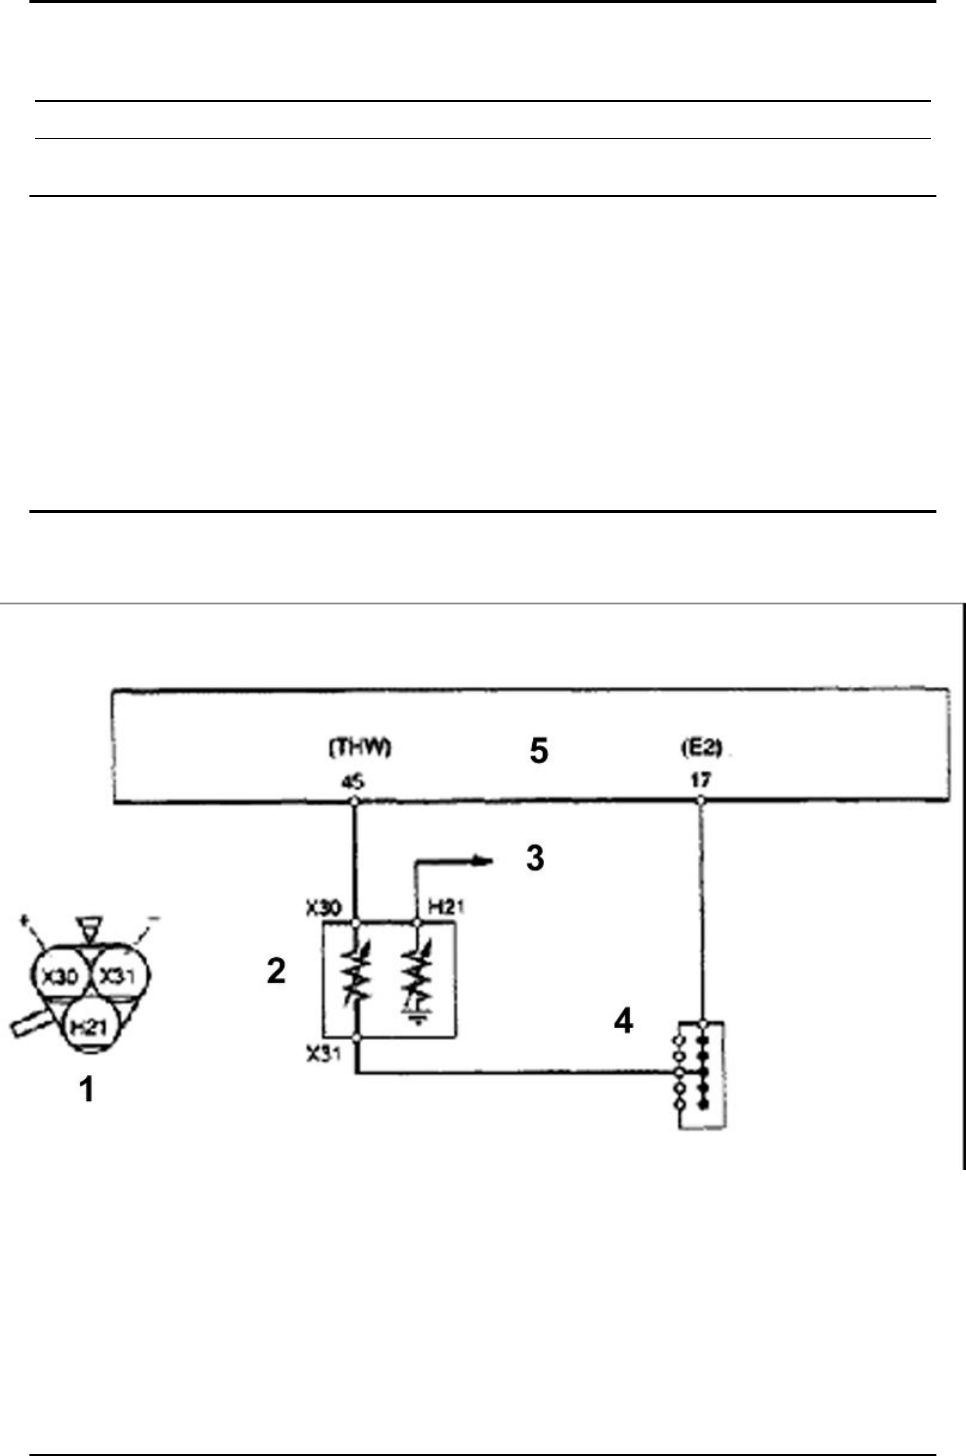 hight resolution of daihatsu hijet wiring diagram wiring library daihatsu hijet wiring diagram